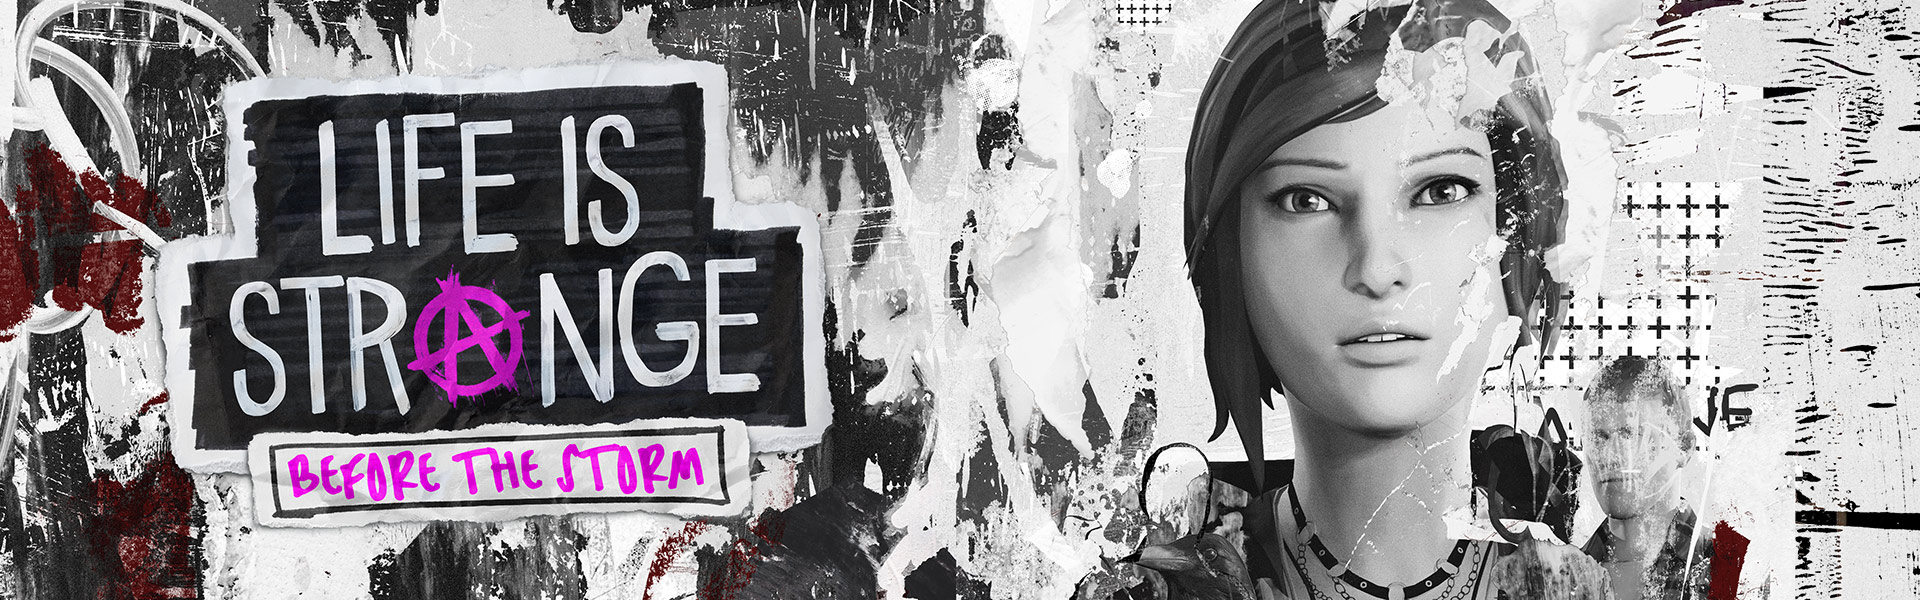 Life is Strange: Before the Storm Primo piano di Chloe con un collage rovinato sullo sfondo.